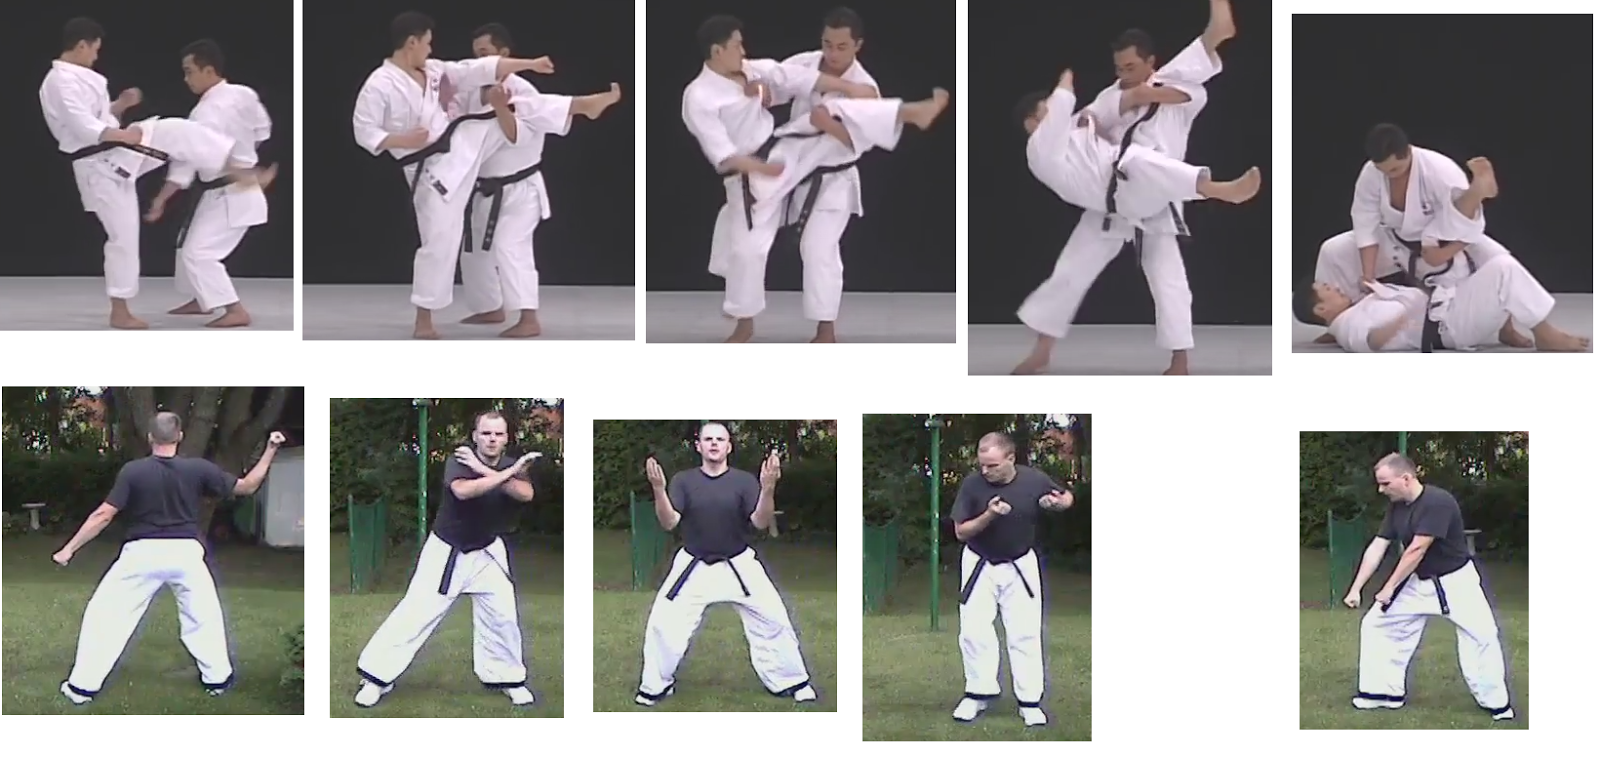 application for deflect sidewaws step forward and punch